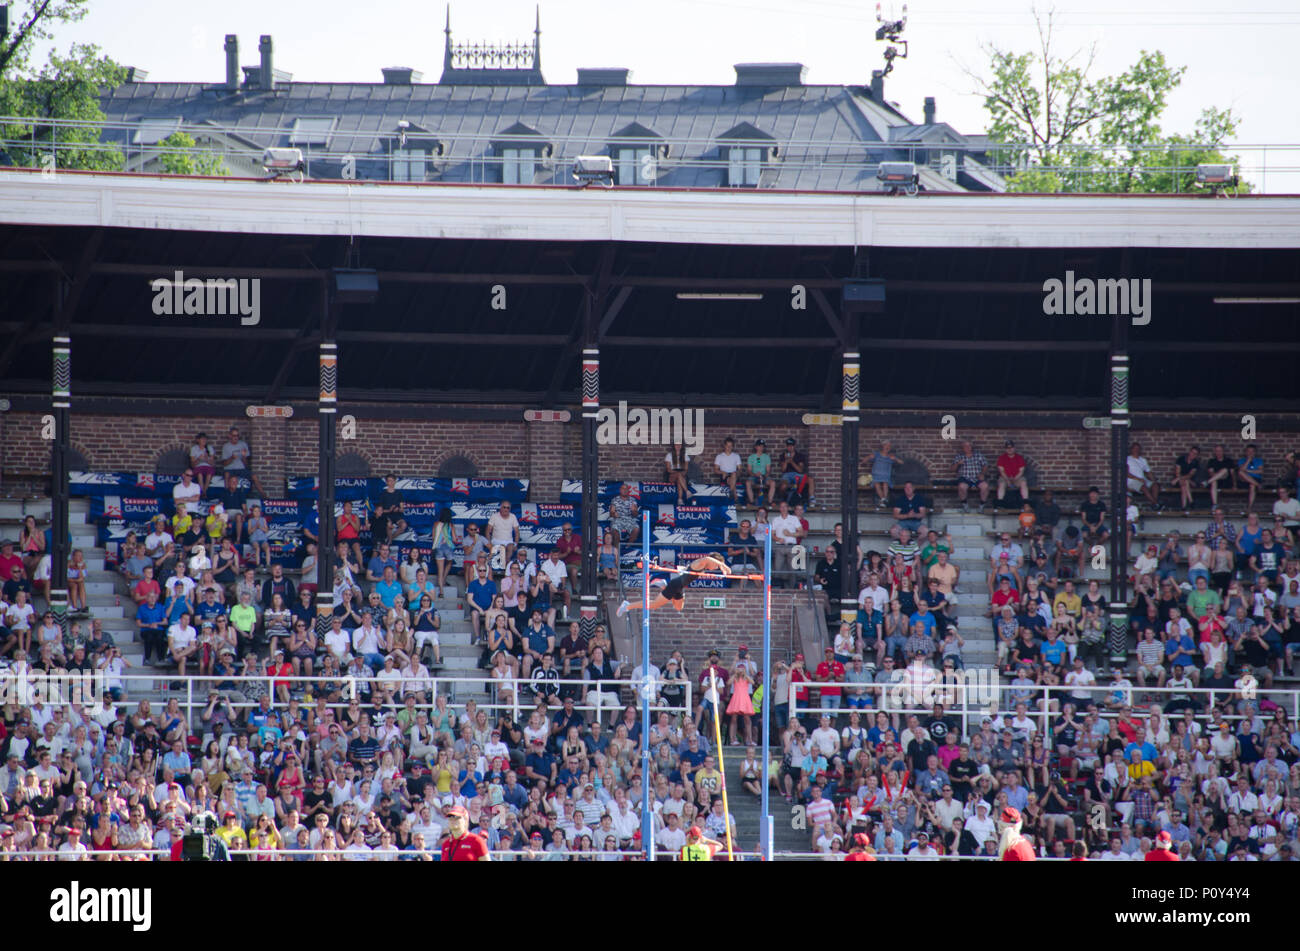 Stockholm, Sweden - 10 June 2018. Pole vault for men on the Diamond league- competition at Stockholm Stadium. The winner, Armand Duplantis making a clearing at 5,81 meters. Credit: Jari Juntunen/Alamy Live News - Stock Image